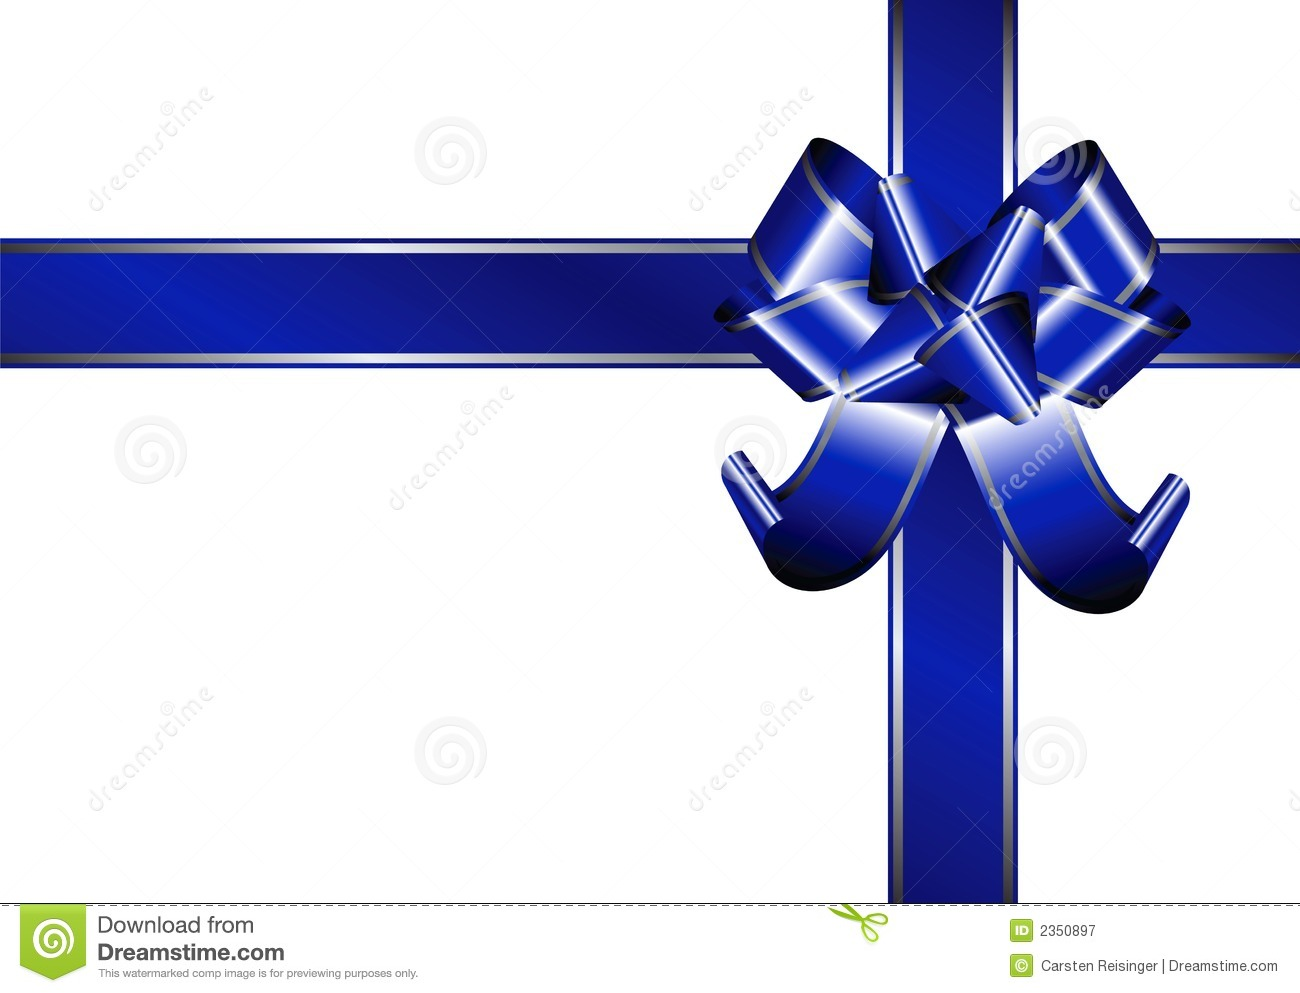 Blue Ribbon Royalty Free Stock Photography - Image: 2350897